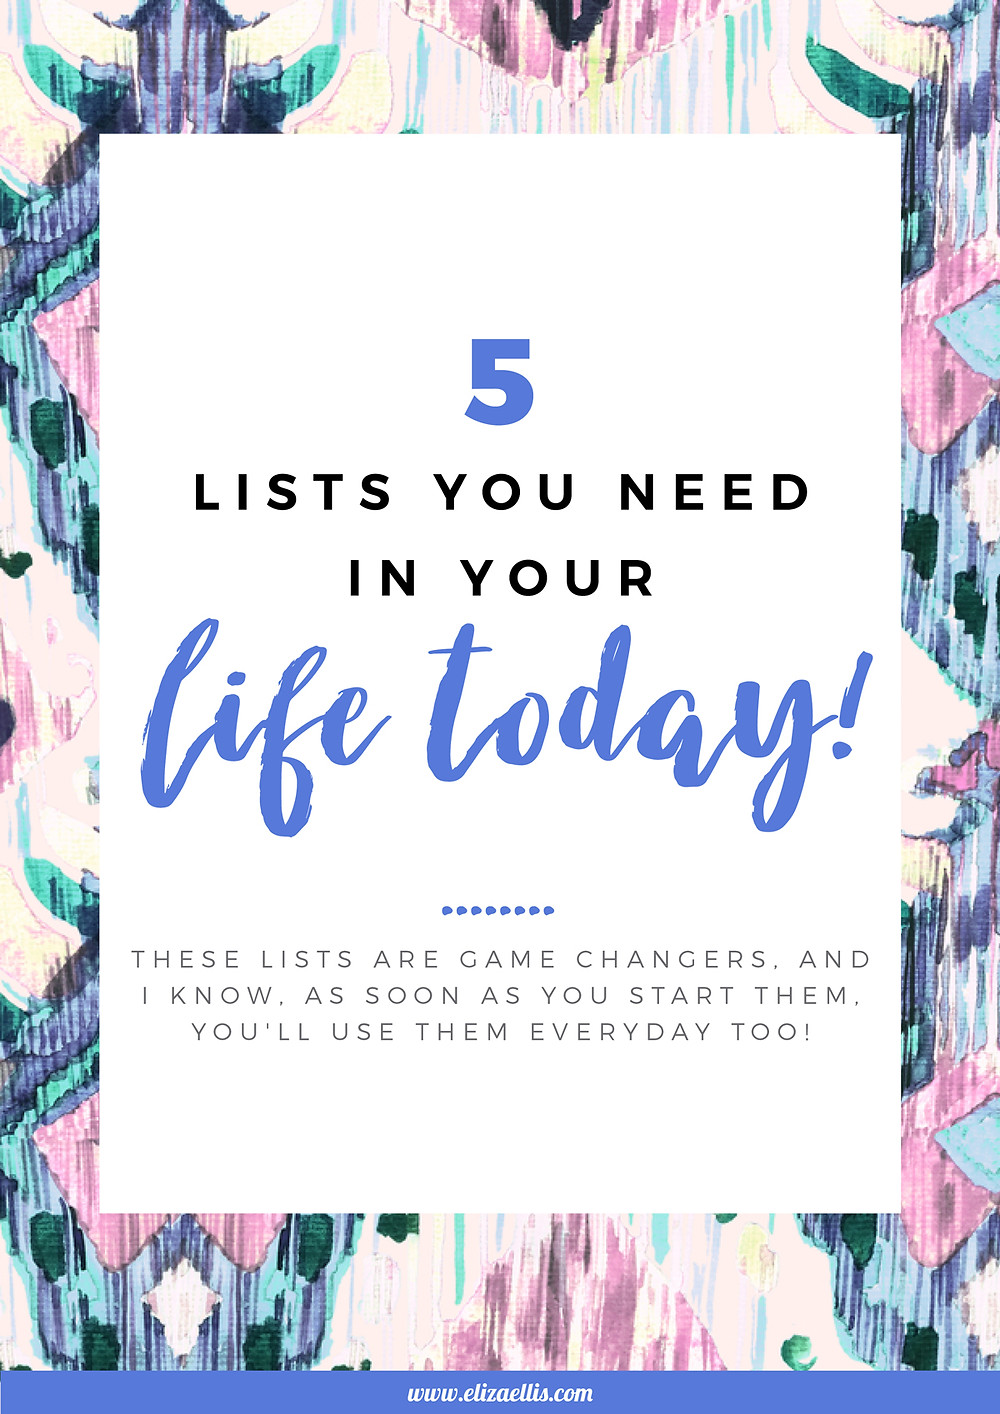 5 Lists You Need In Your Life Today! // Eliza Ellis // lists, lists to make, list organizing, organizing with lists, list ideas, lists for self care, bucket list, happy list, ultimate list, easy meal ideas list, recipe list, things to buy list, wish list, shopping list, gift ideas, christmas gift ideas, project lists, birthday gift ideas, christmas gift list, easter gift list, 2020 bucket list, 2020 self care list, life lists, to do list ideas, to do list organization, to do list printable, printable planners, free printables